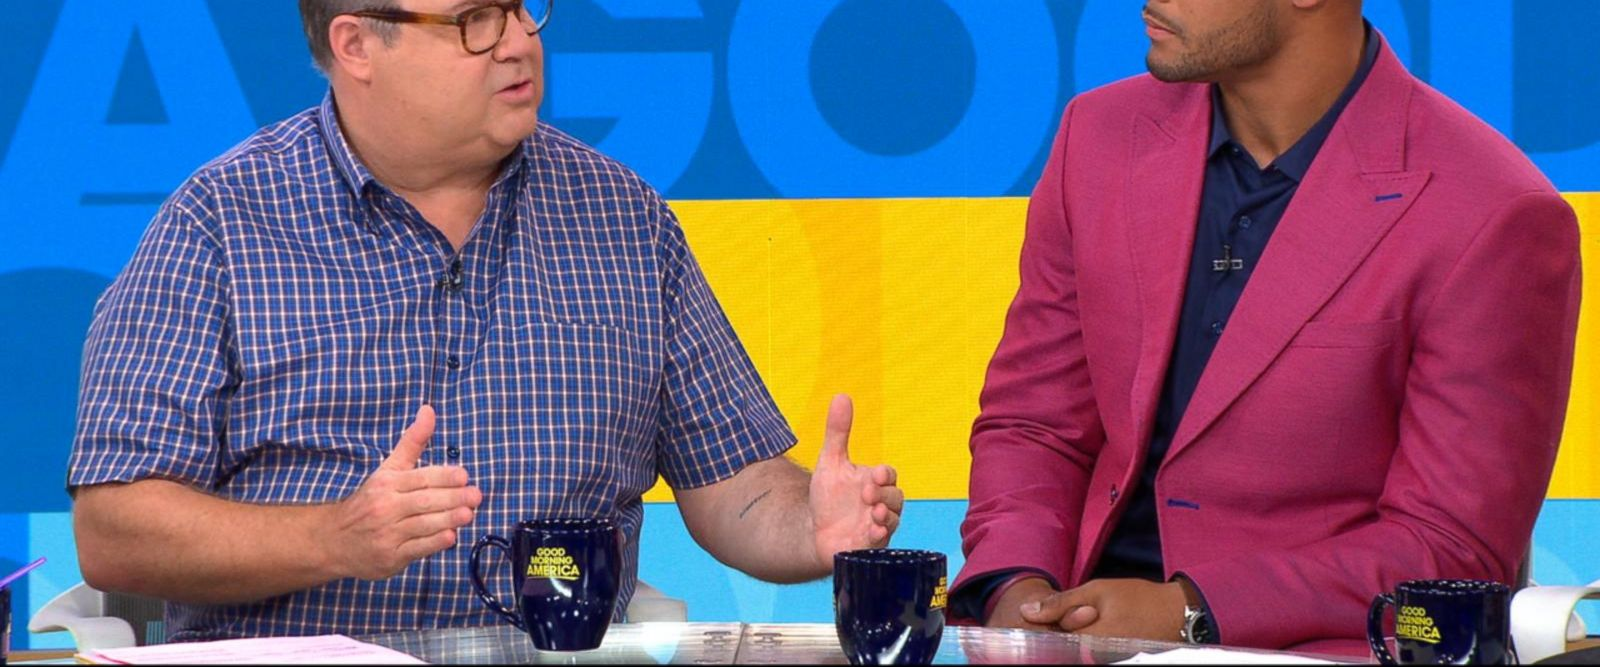 VIDEO: Eric Stonestreet and Dak Prescott discuss their new project for cancer research